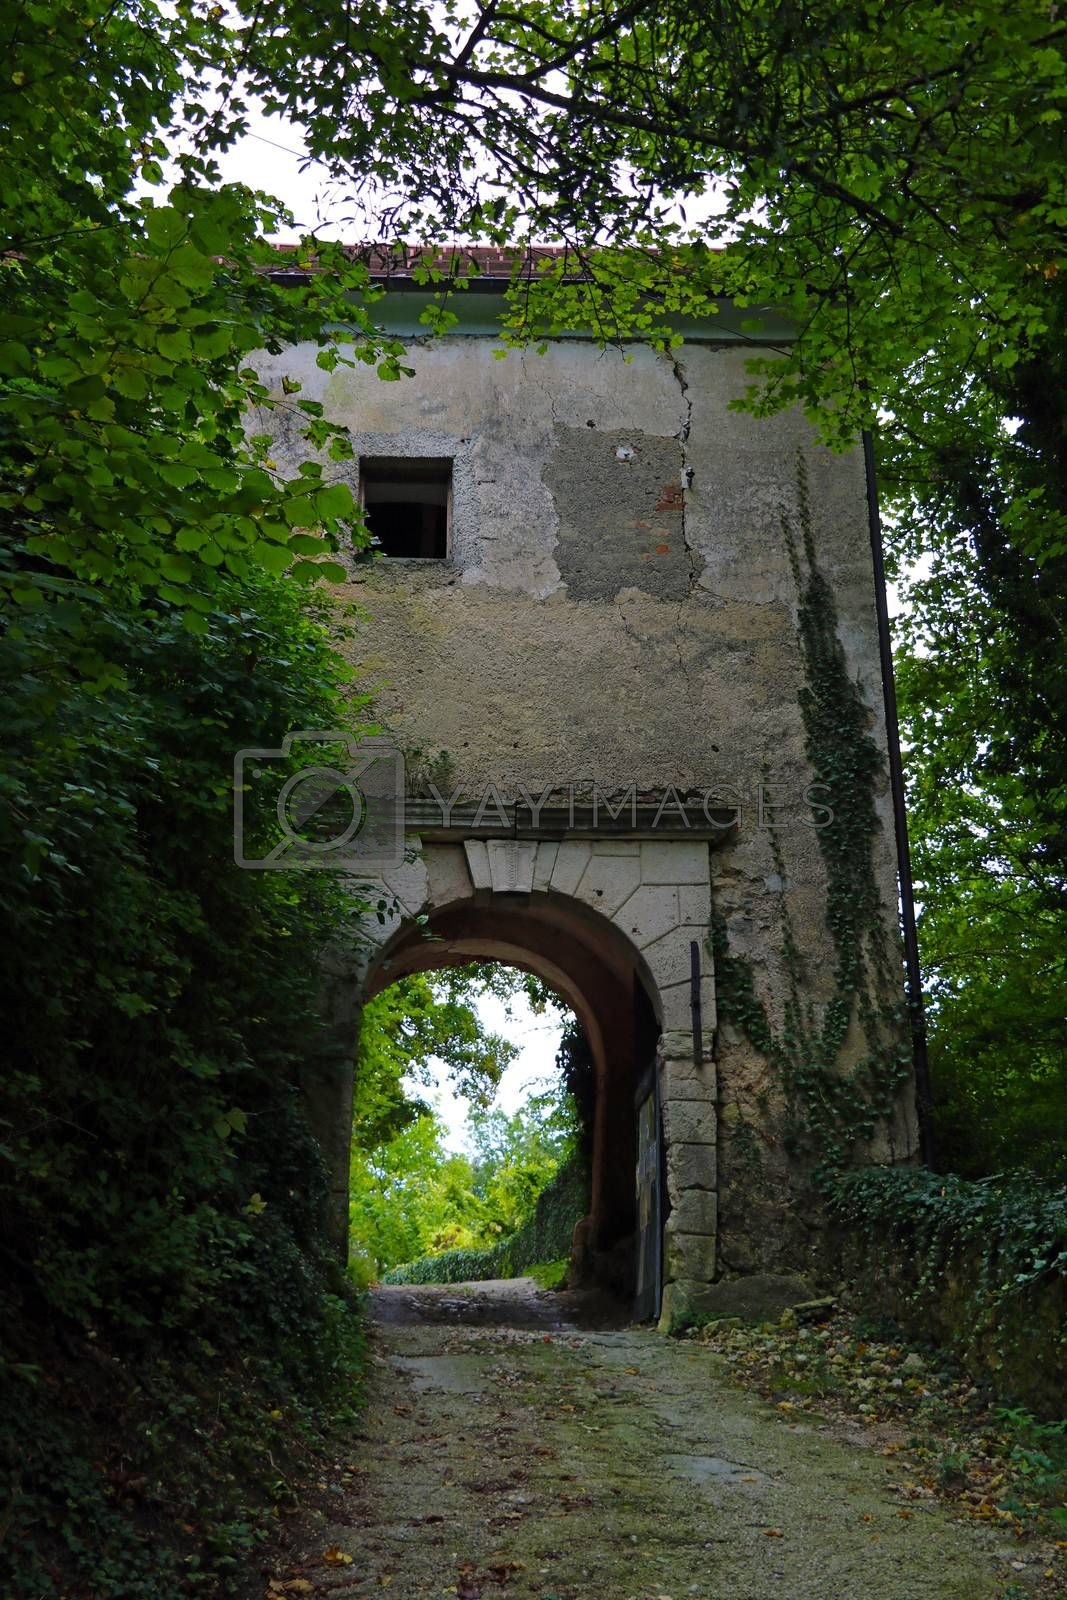 An old building with an arch for car passage